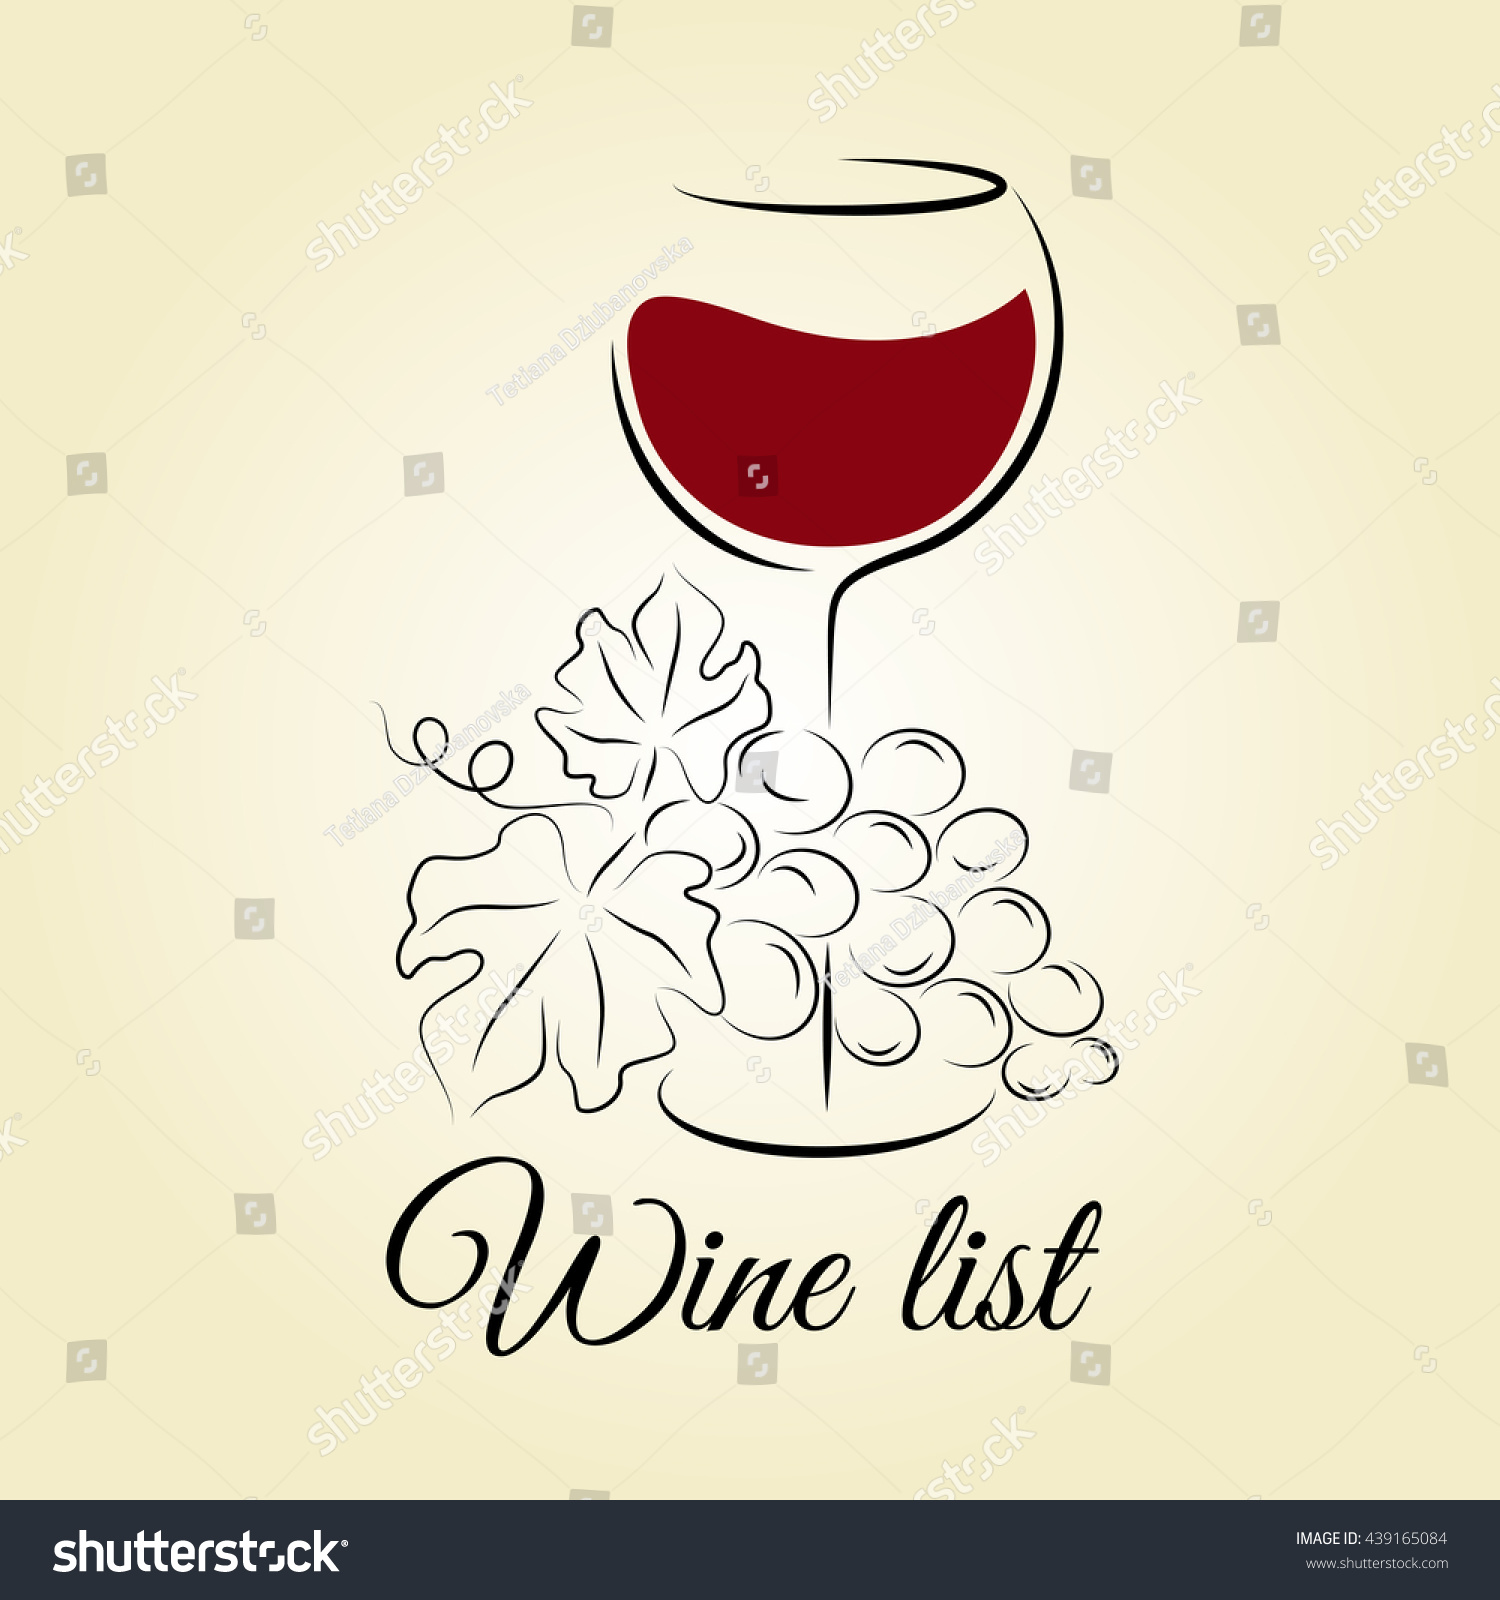 wine list We are known throughout delaware and the greater philadelphia region for our award-winning wine list our extensive wine selection has been praised as best wine cellar, top wine list in greater philadelphia, top wine list nationally, and more.